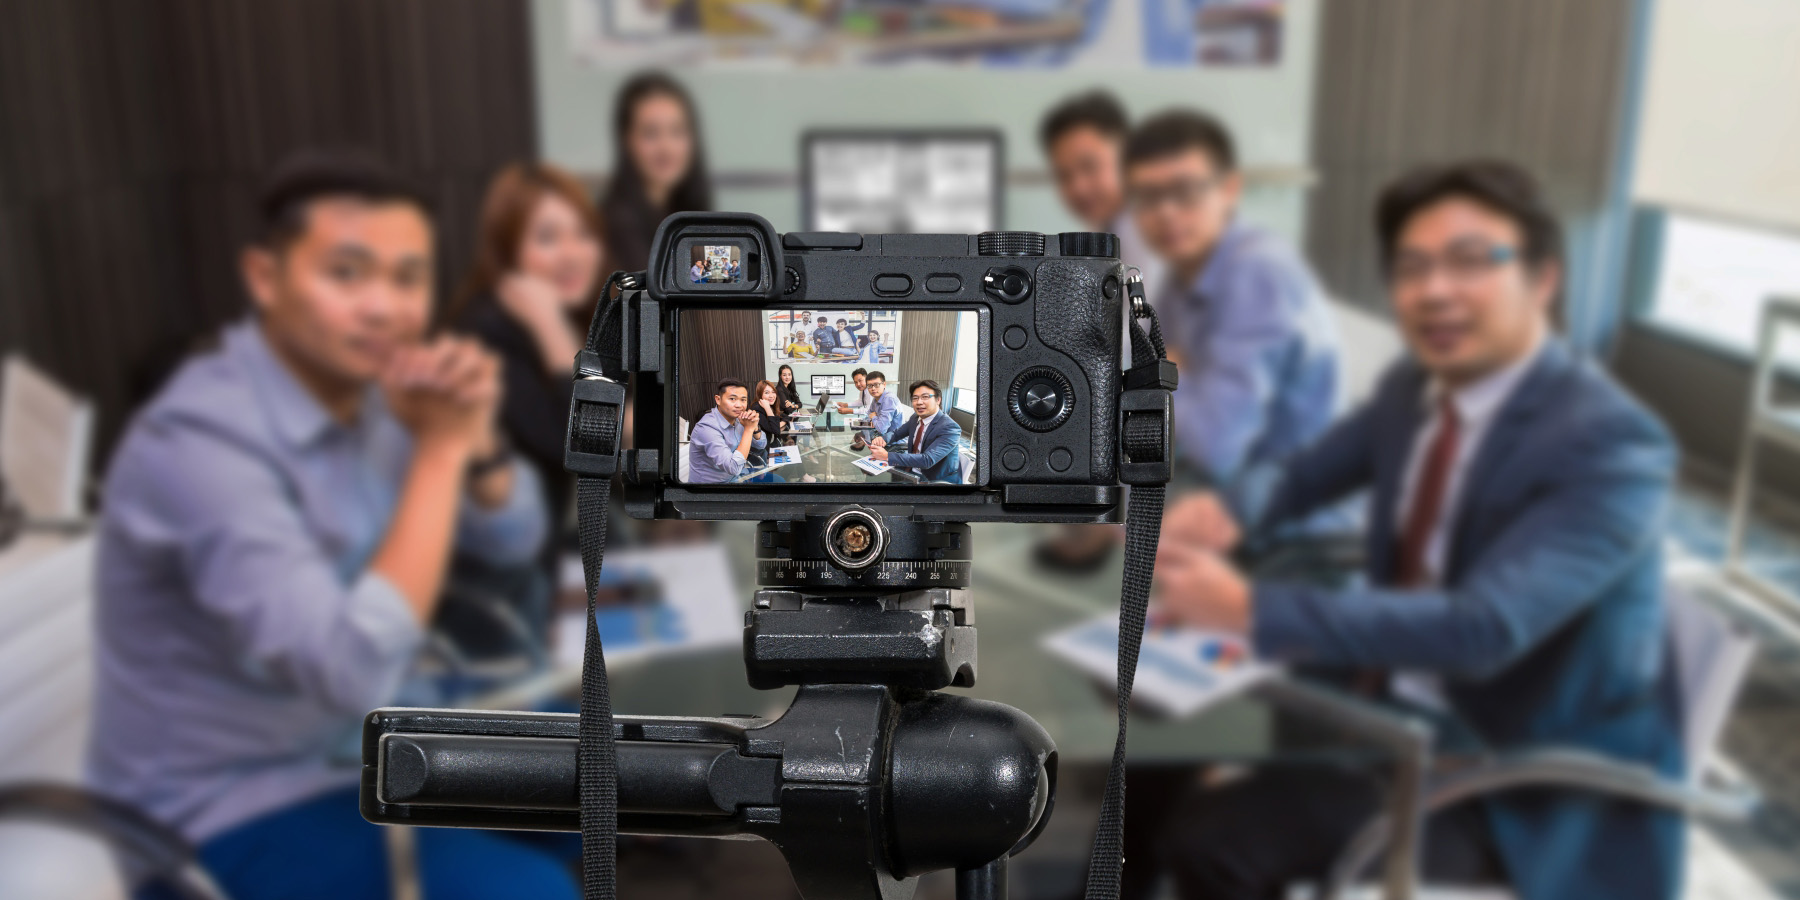 Corporate Videos – Their role in Marketing